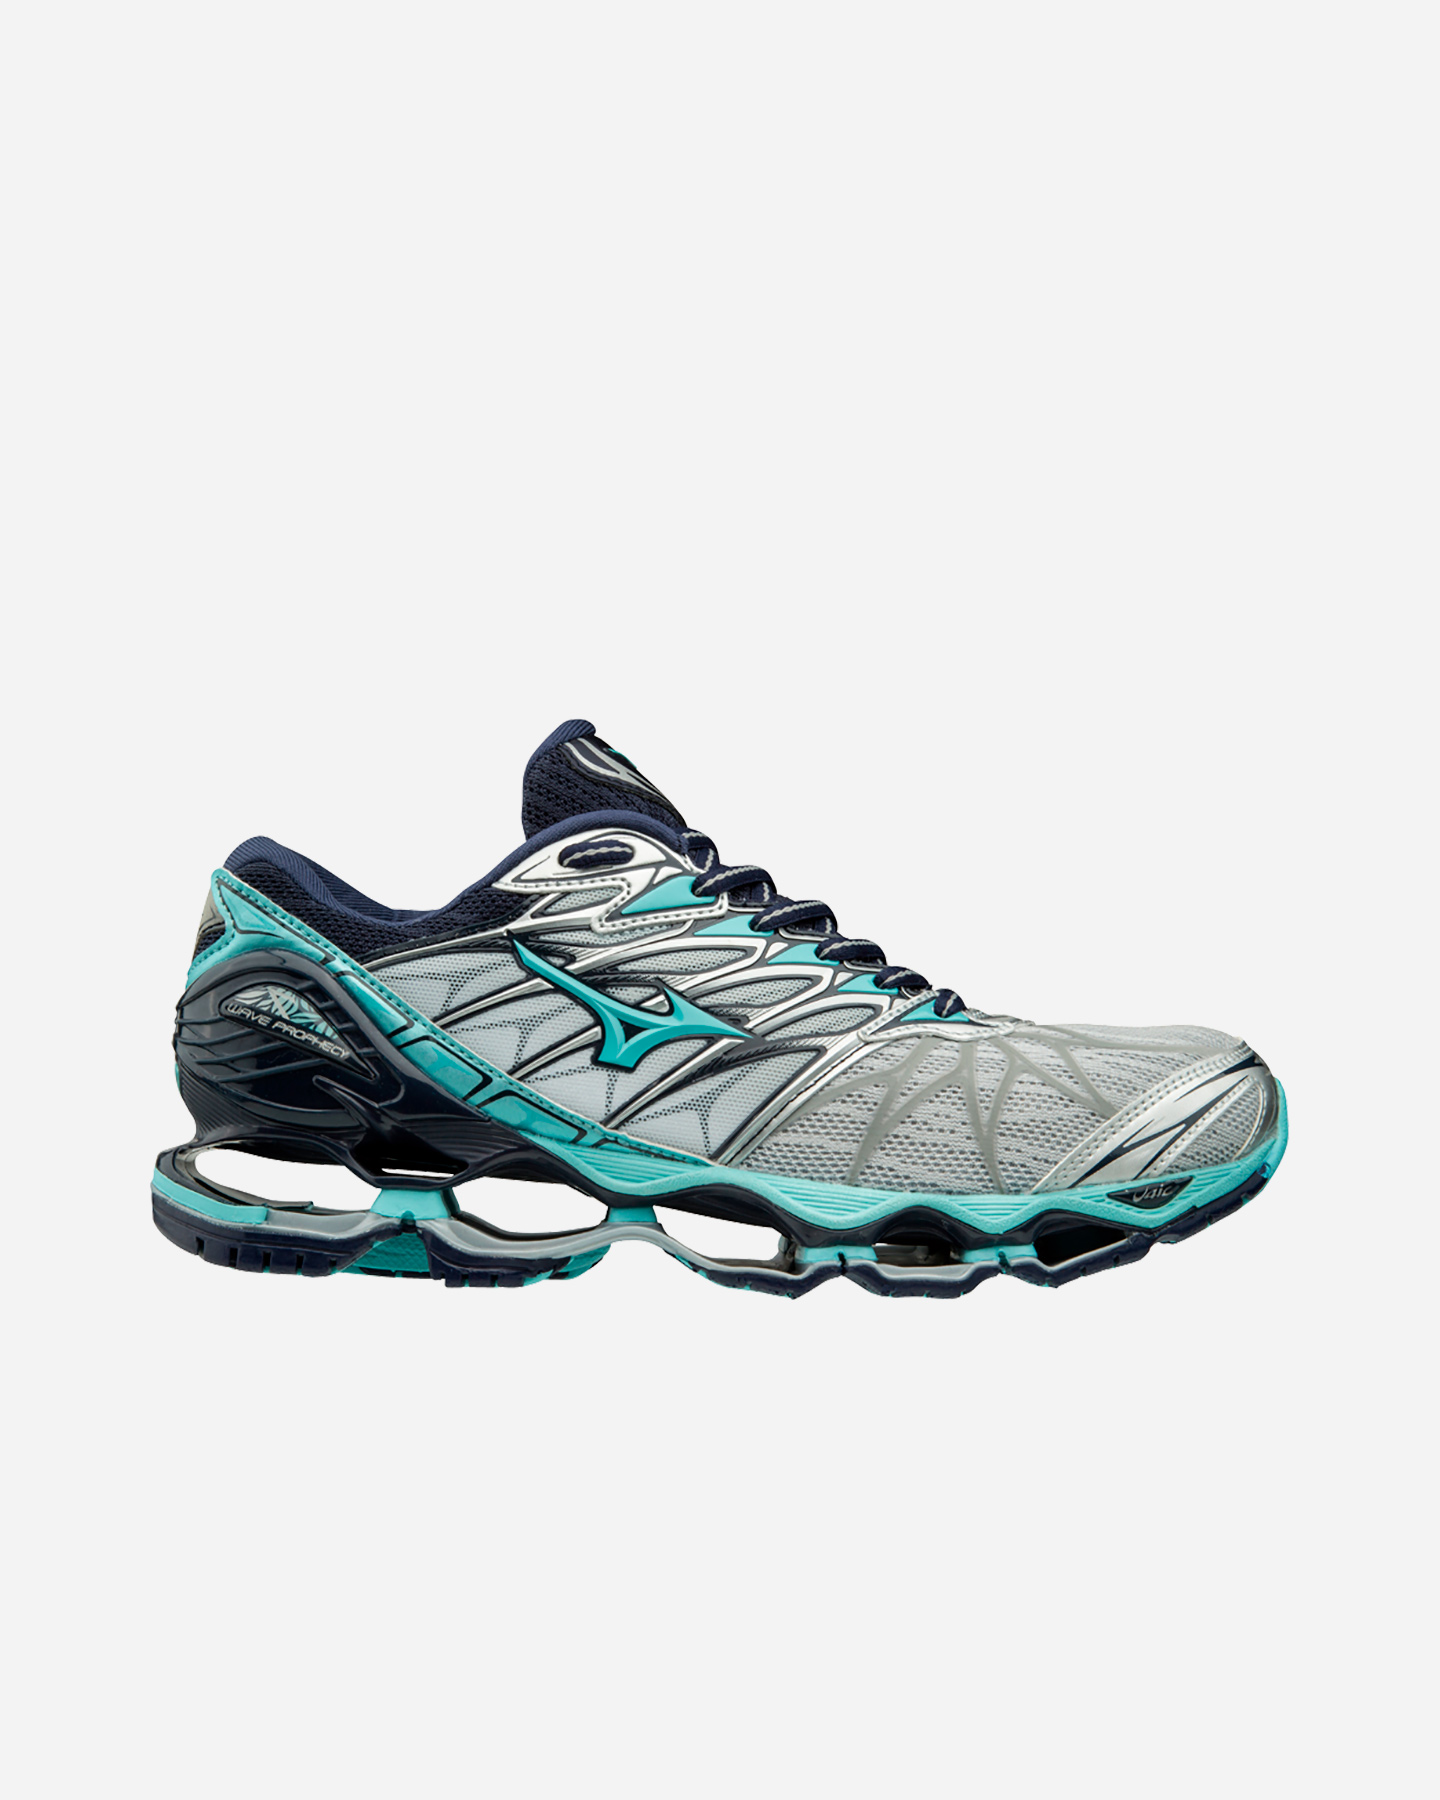 Scarpe Running Mizuno Wave Prophecy 7 W J1GD1800 31